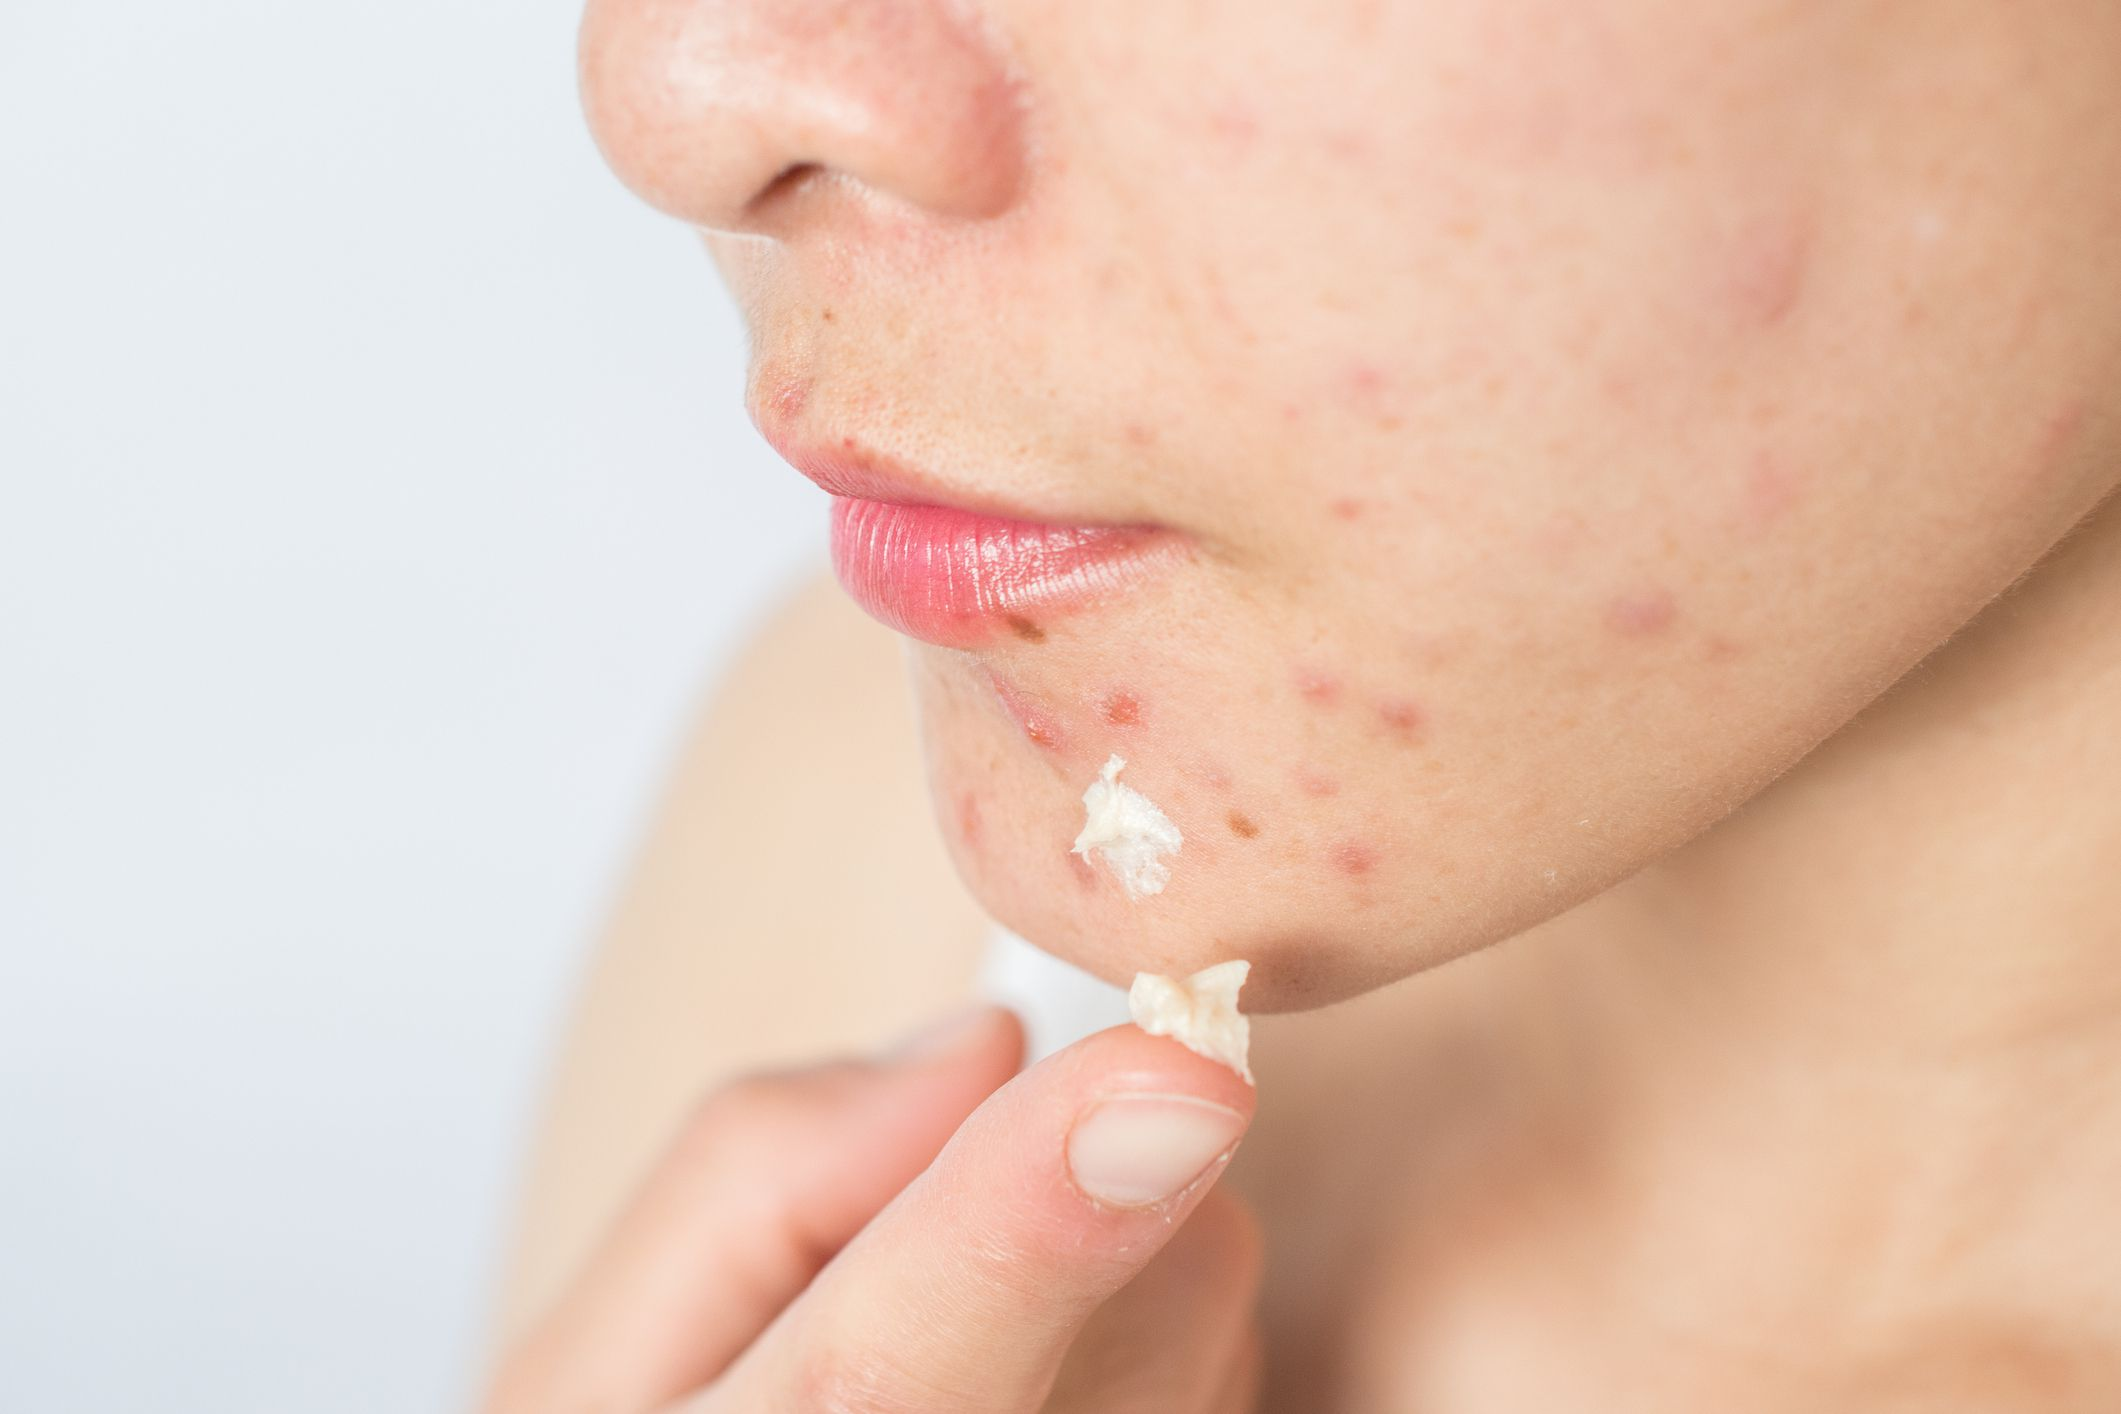 young Asian woman with acne applying acne cream on her face